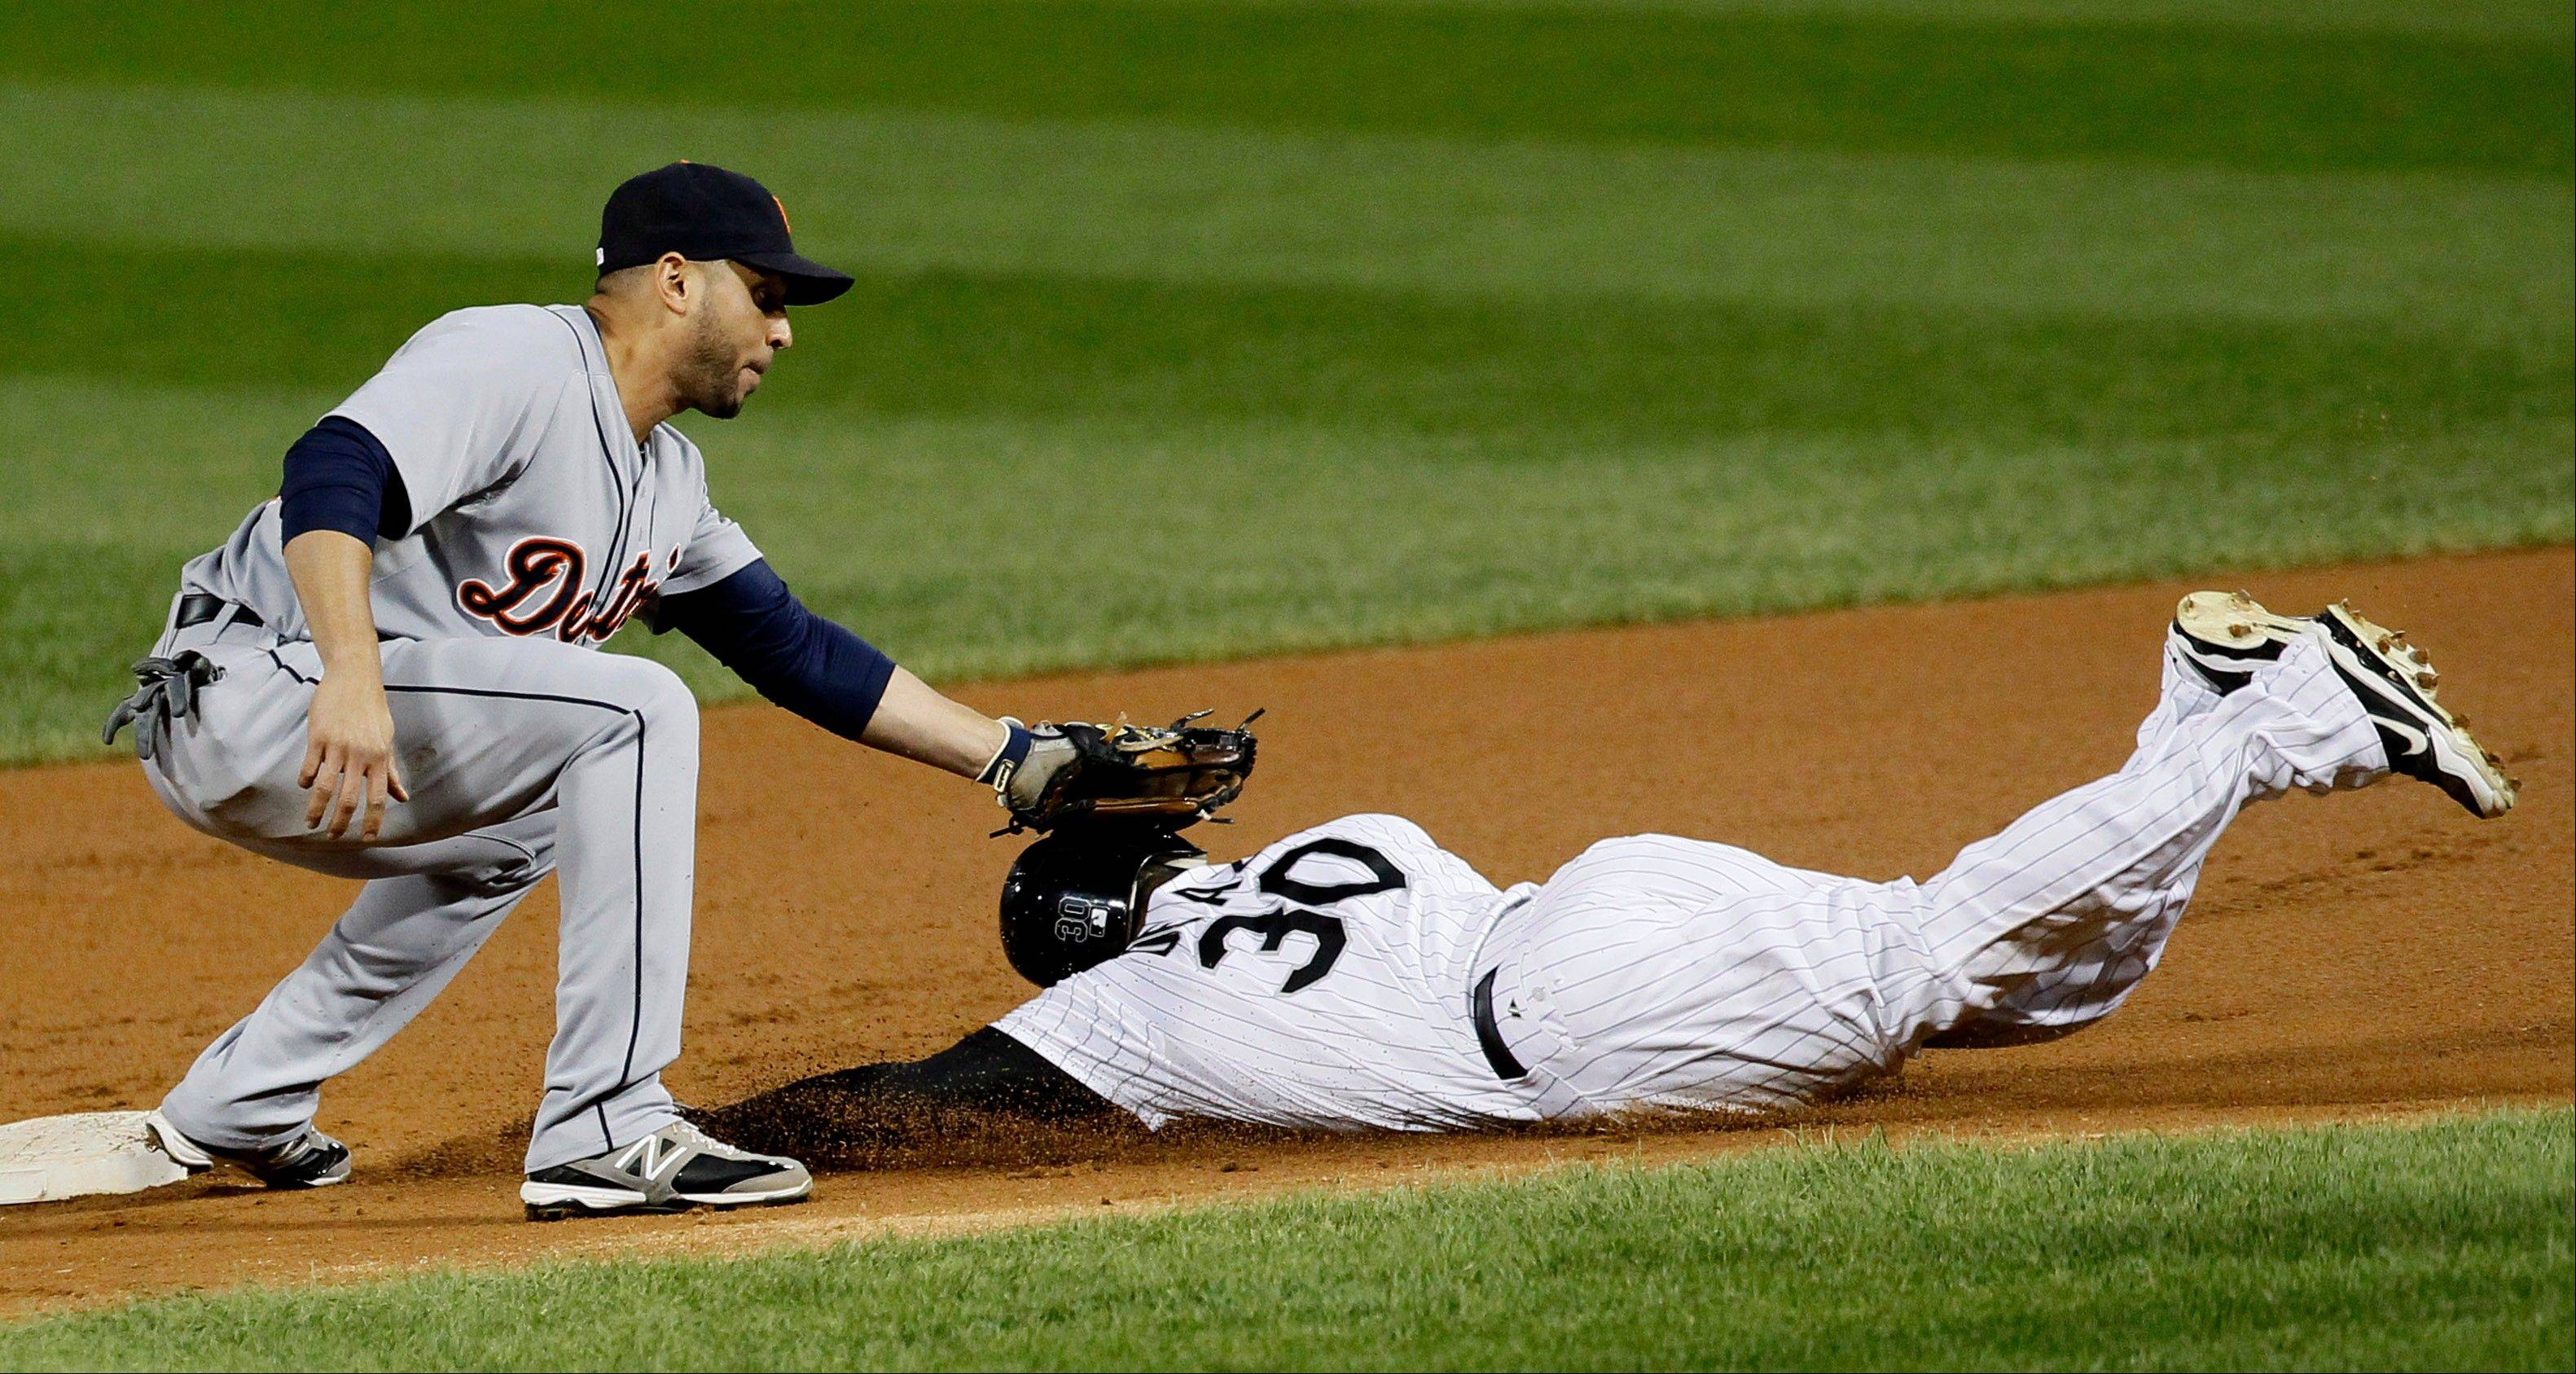 Tigers second baseman Omar Infante appears to tag Alejandro De Aza on the head, but De Aza was called safe stealing second by umpire Todd Tichenor, during the first inning Monday at U.S. Cellular Field.